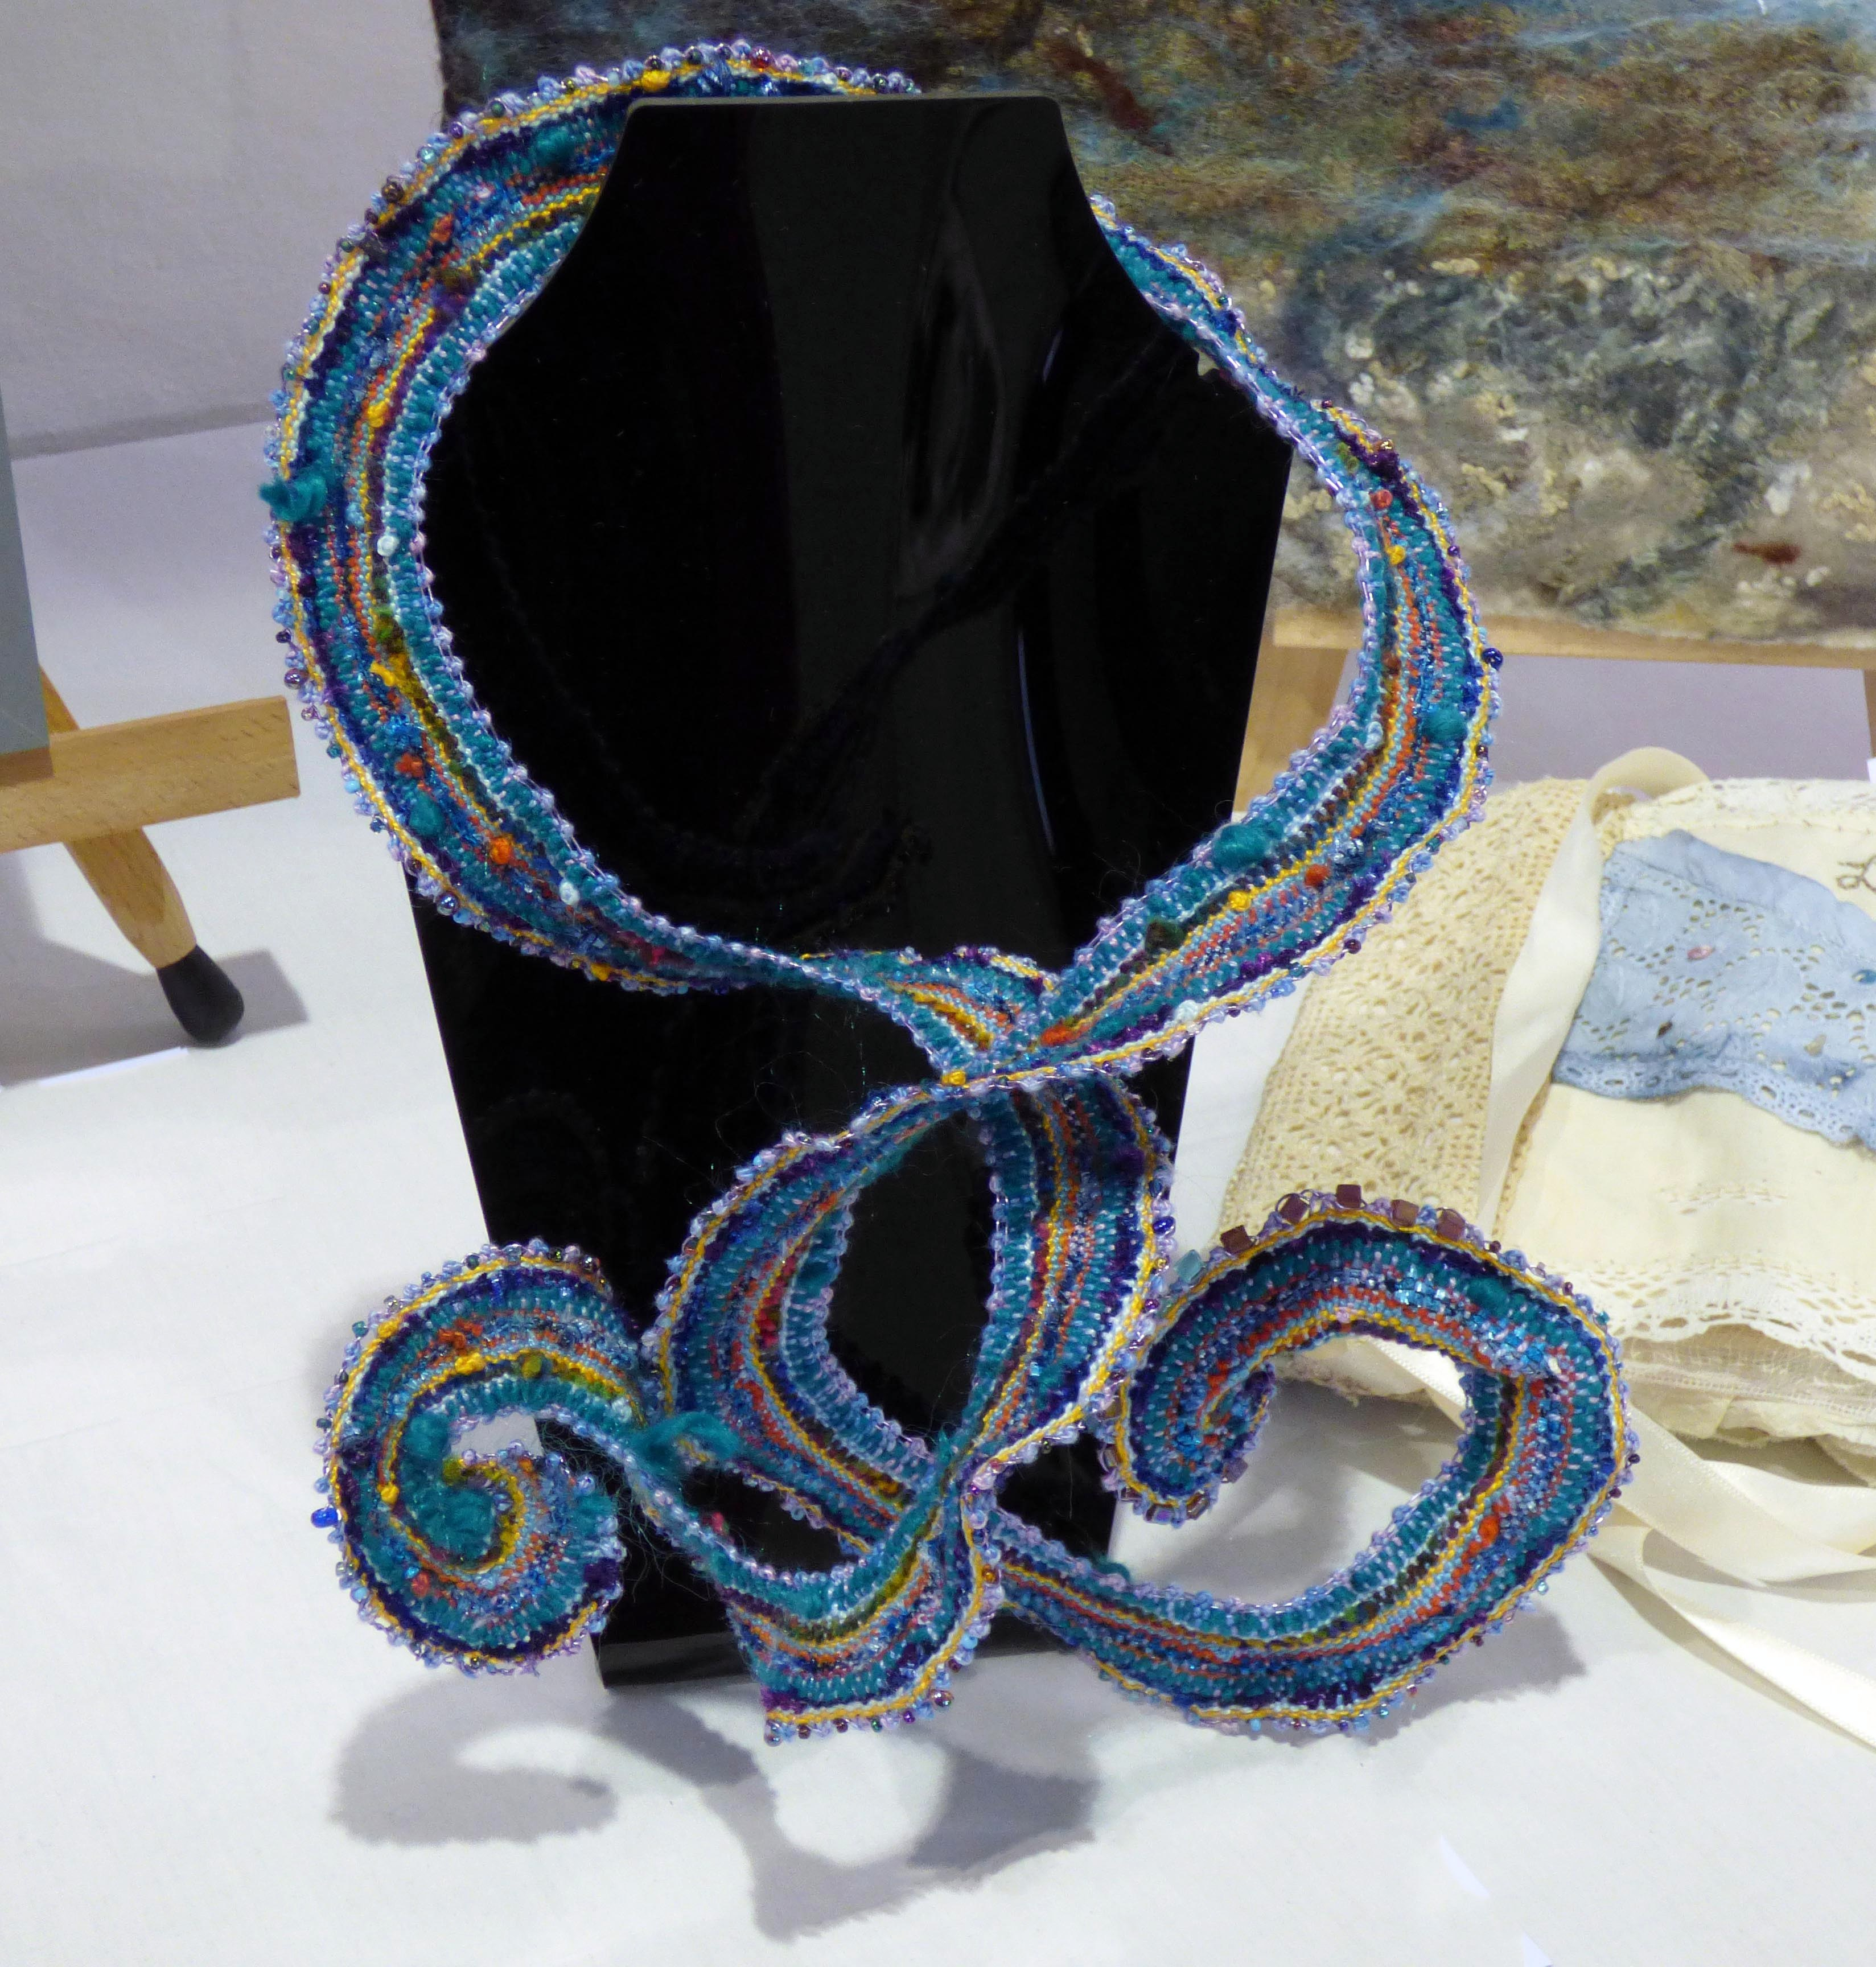 TURQUOISE NECKLACE by Diana Finn, N.Wales EG, Torchon lace coil